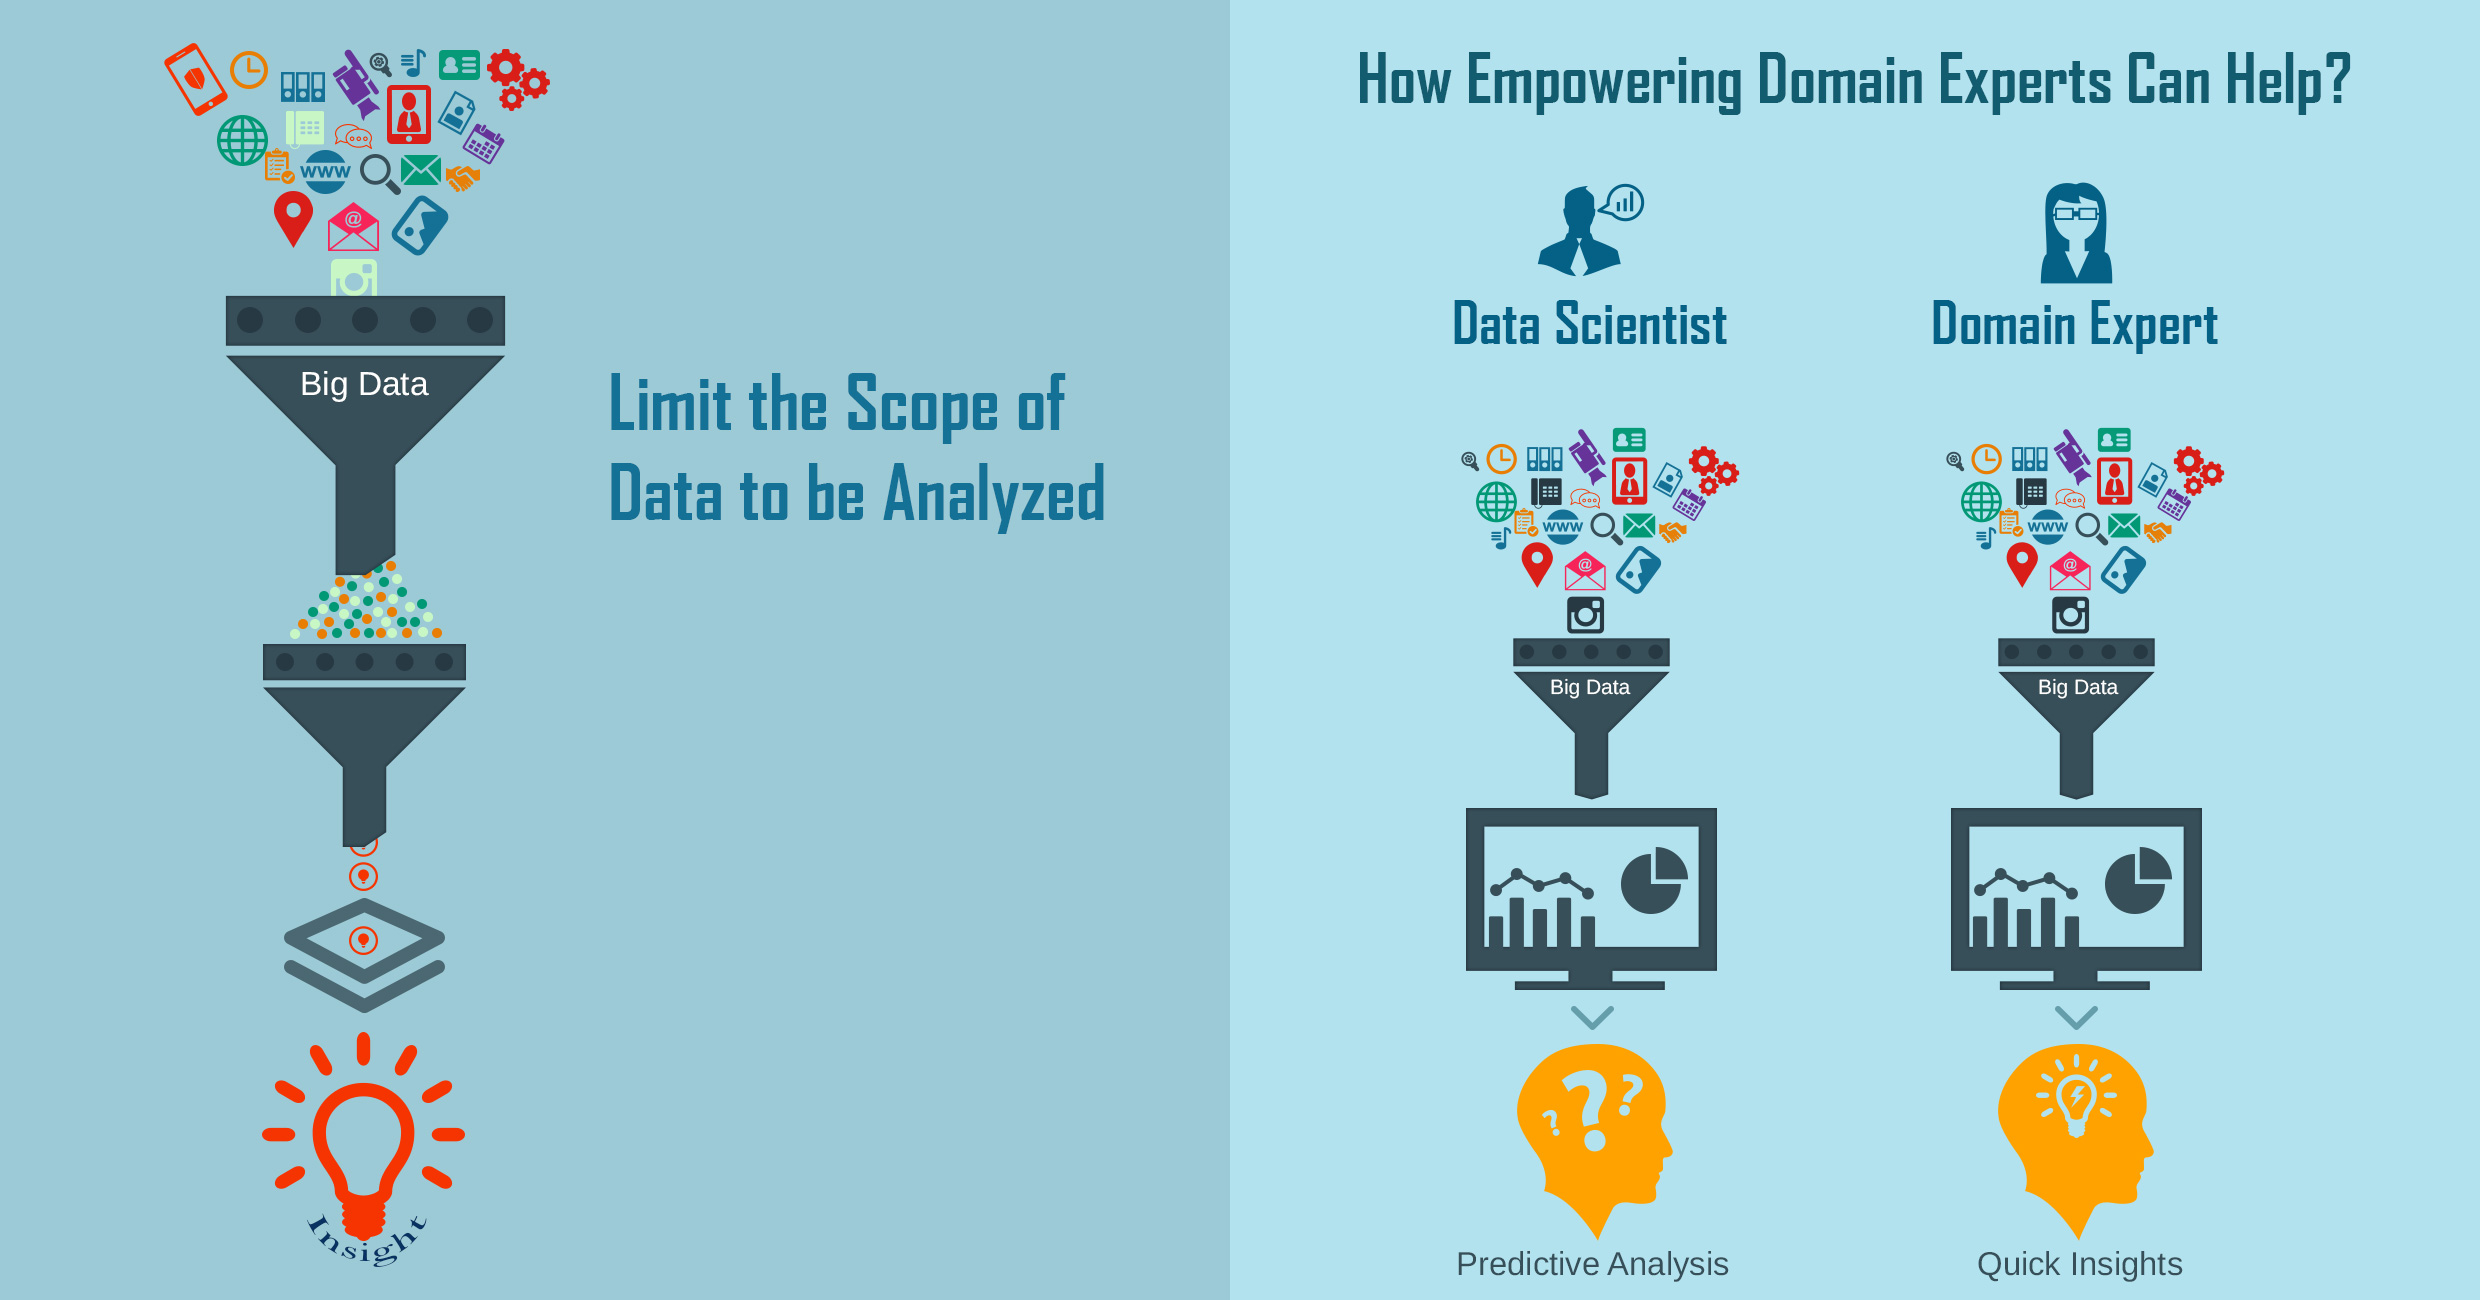 Big Data Infographic on empowering domain experts to drive the machine learning aspect of big data analysis